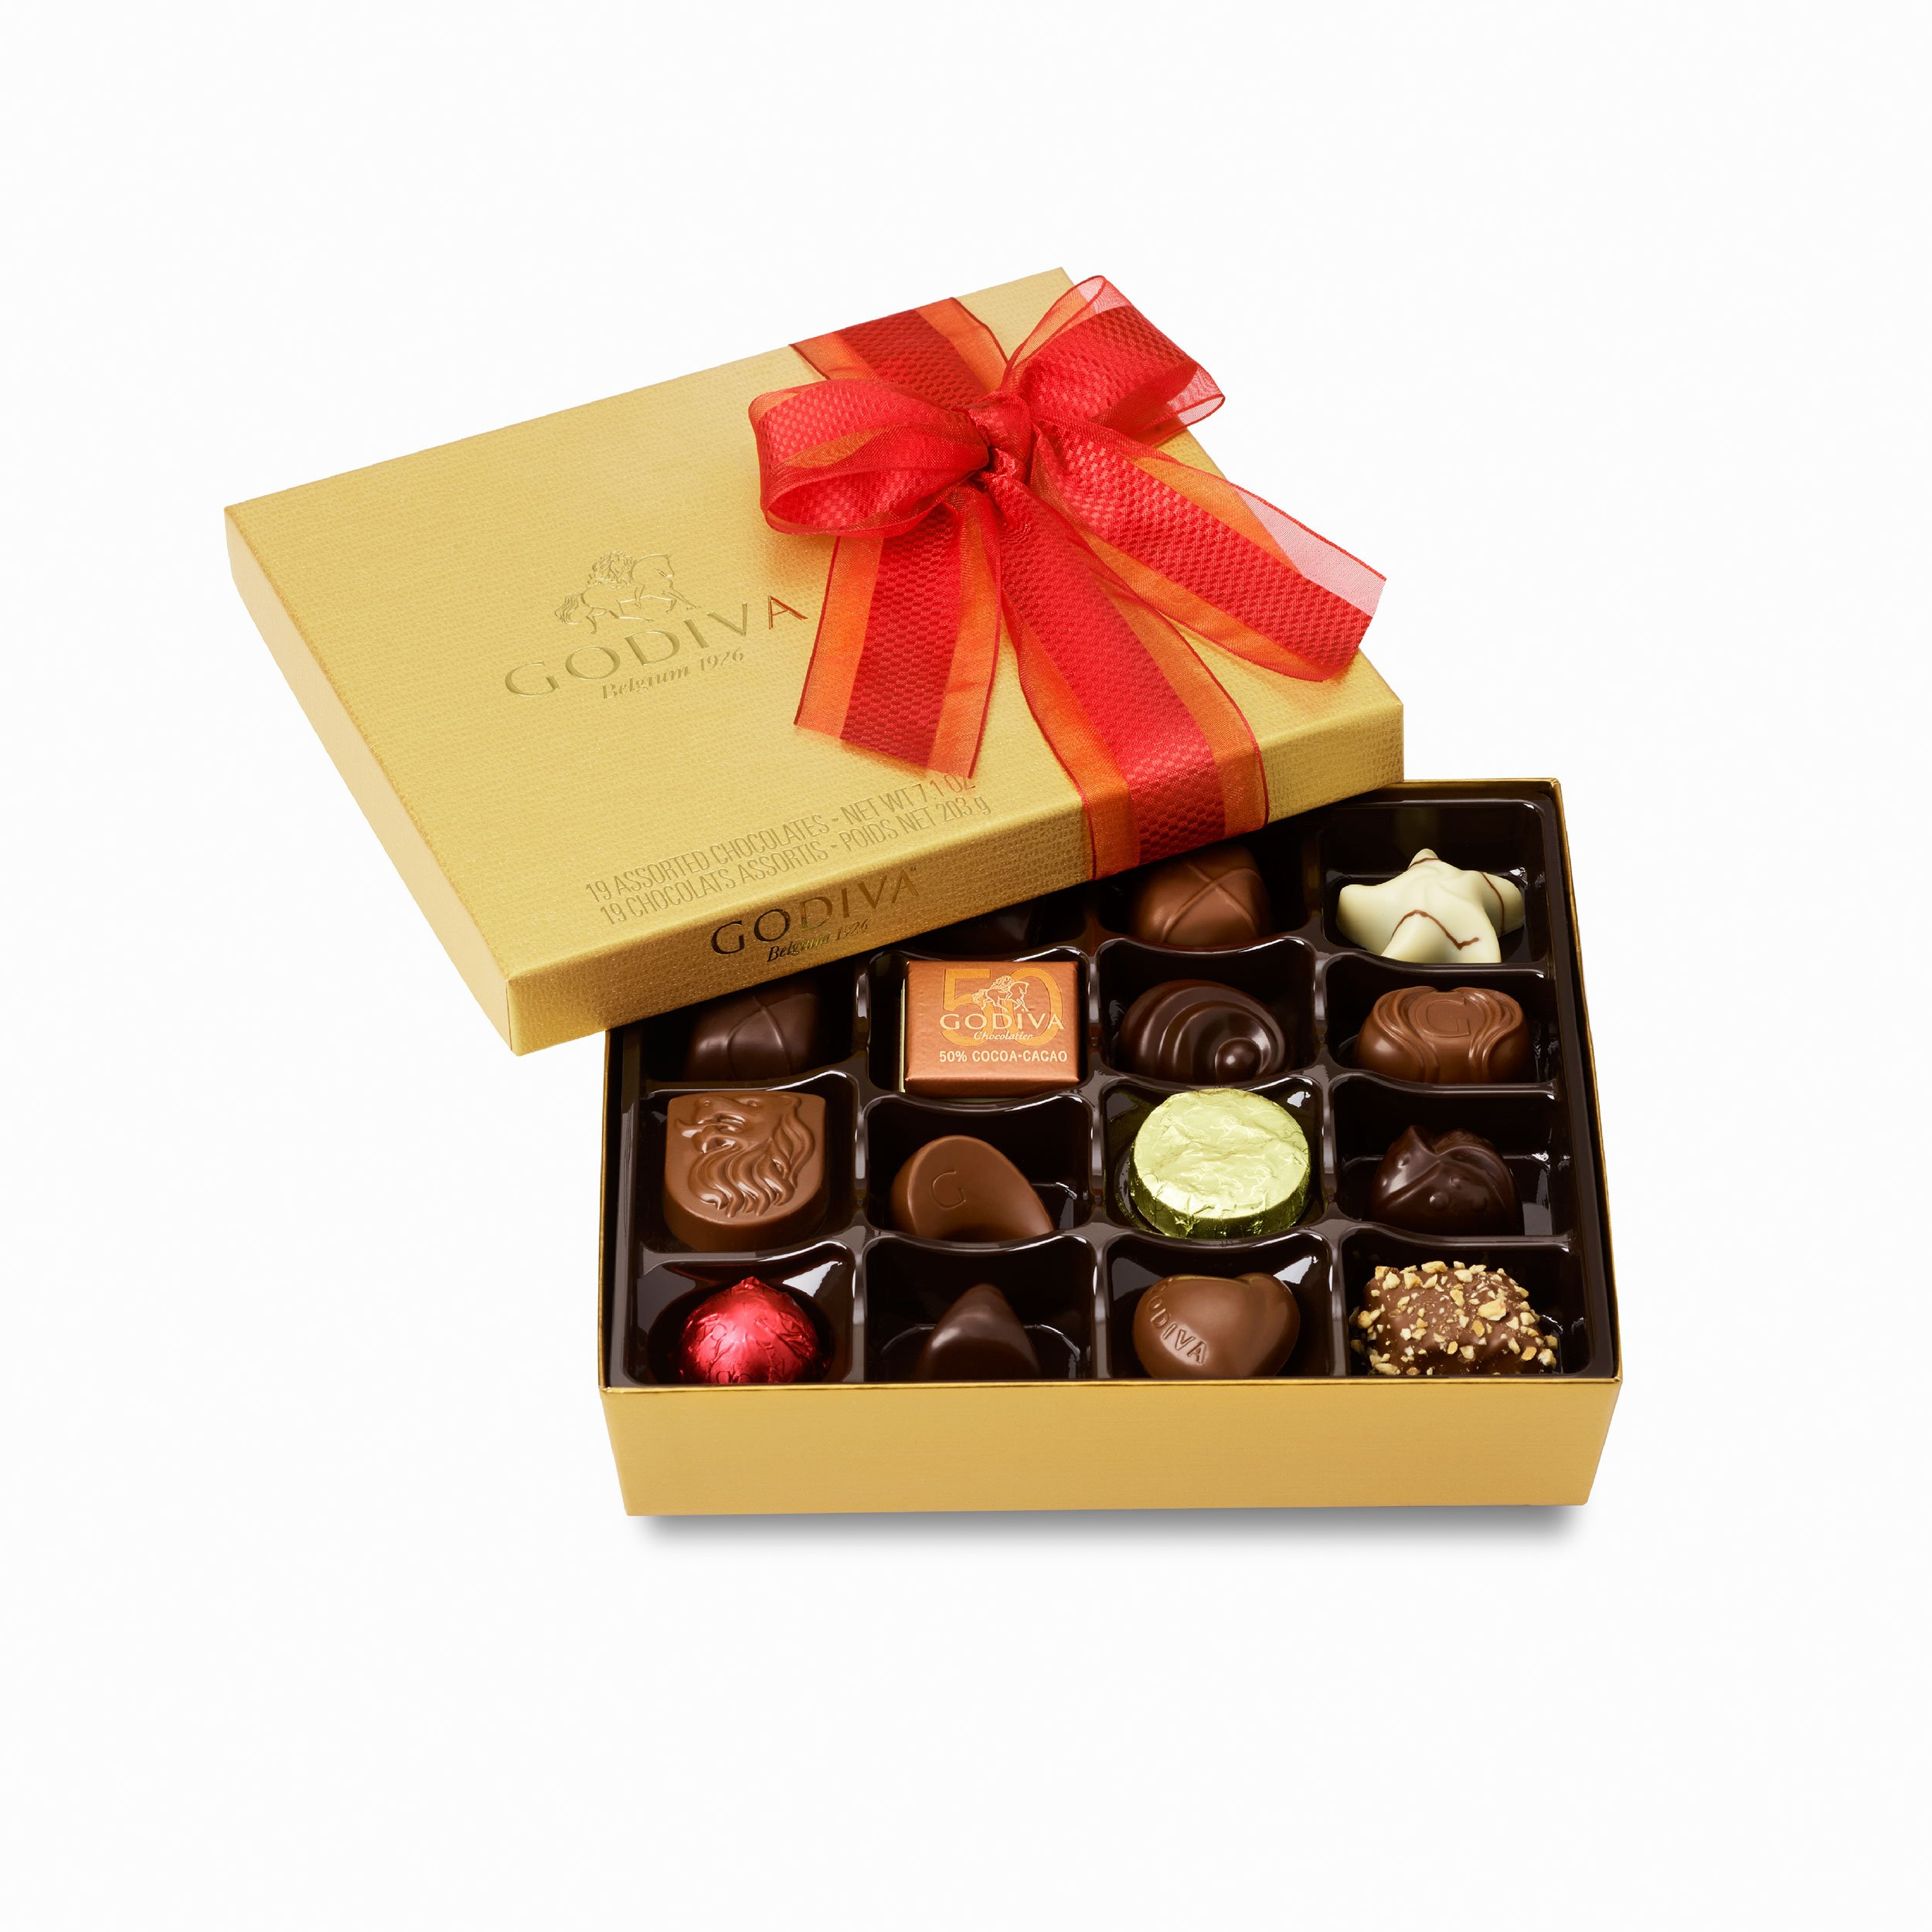 Godiva Chocolatier Gold Ballotin Assorted Gourmet Chocolates 19 Piece Gift Box, Easter Basket Stuffers